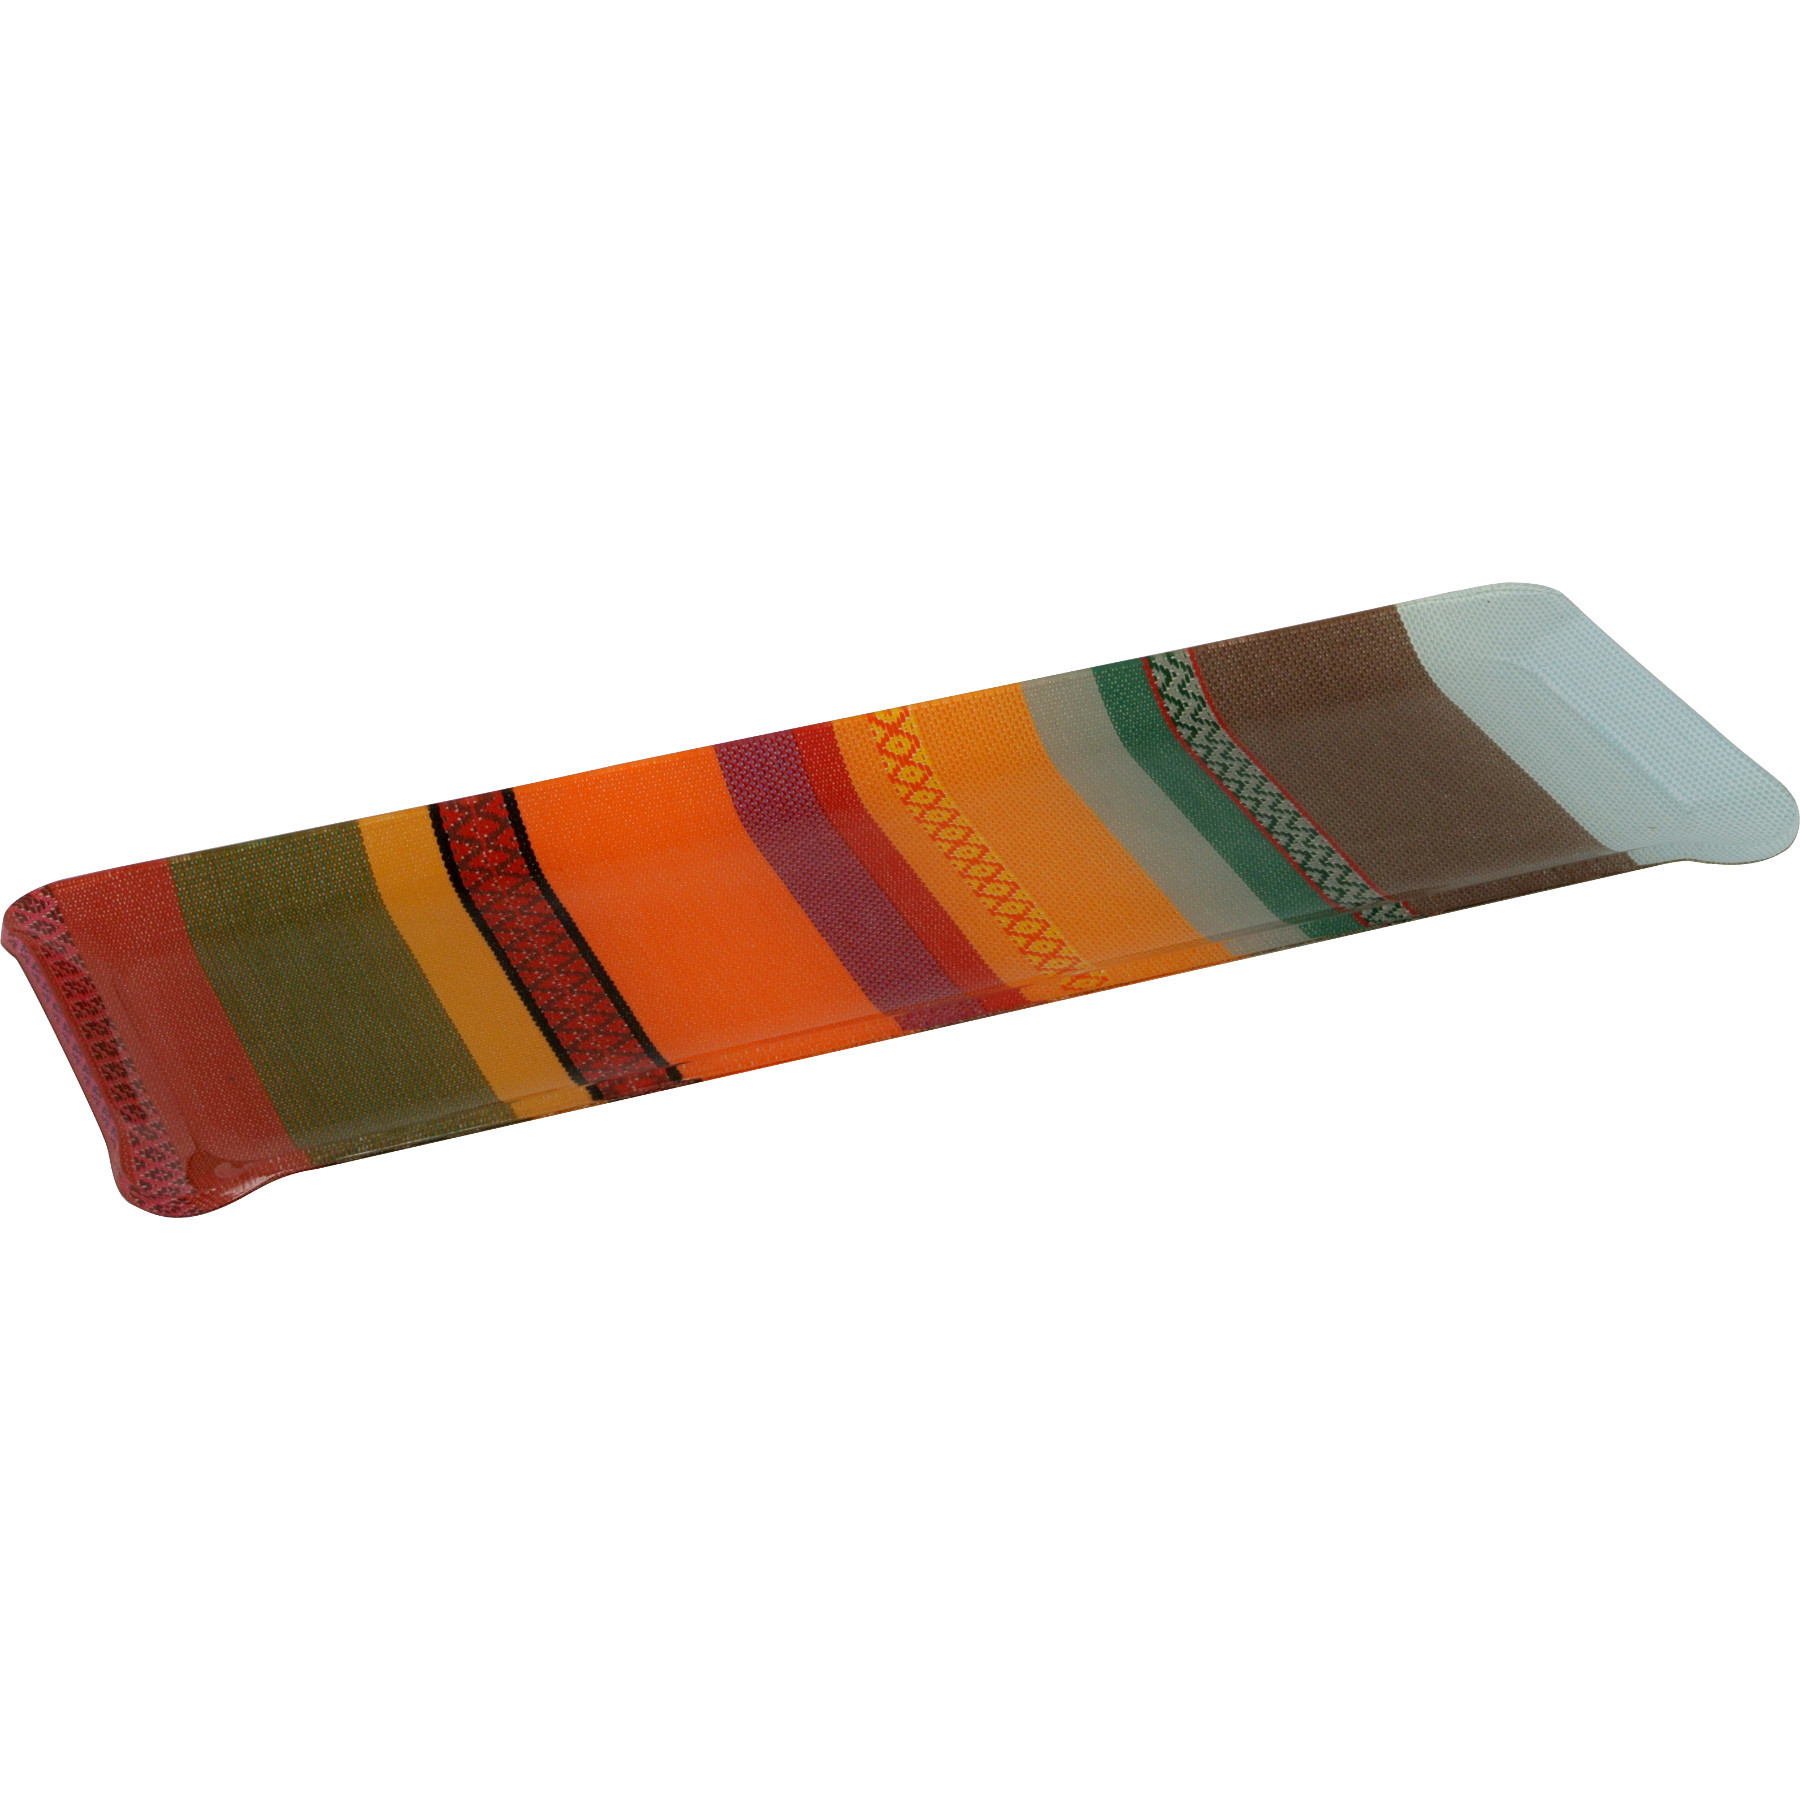 Table Linen Items Online - Tray Maury Anis